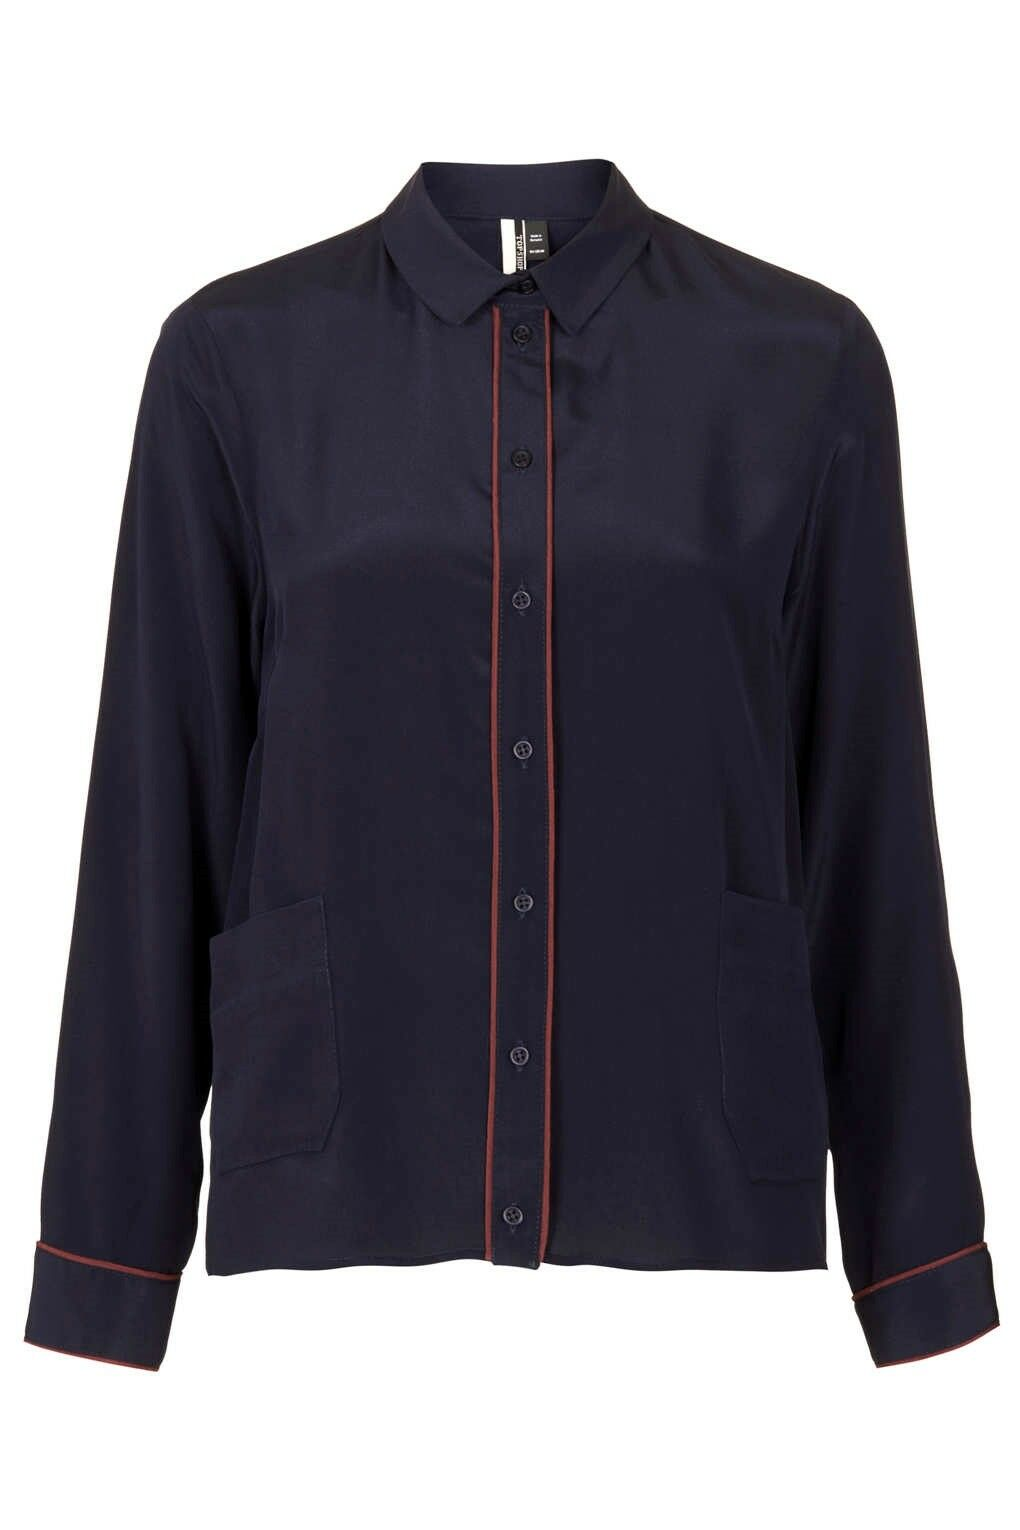 NWT  Designer Boutique Topshop Pure SILK Burgundy tipped SHIRT French Navy